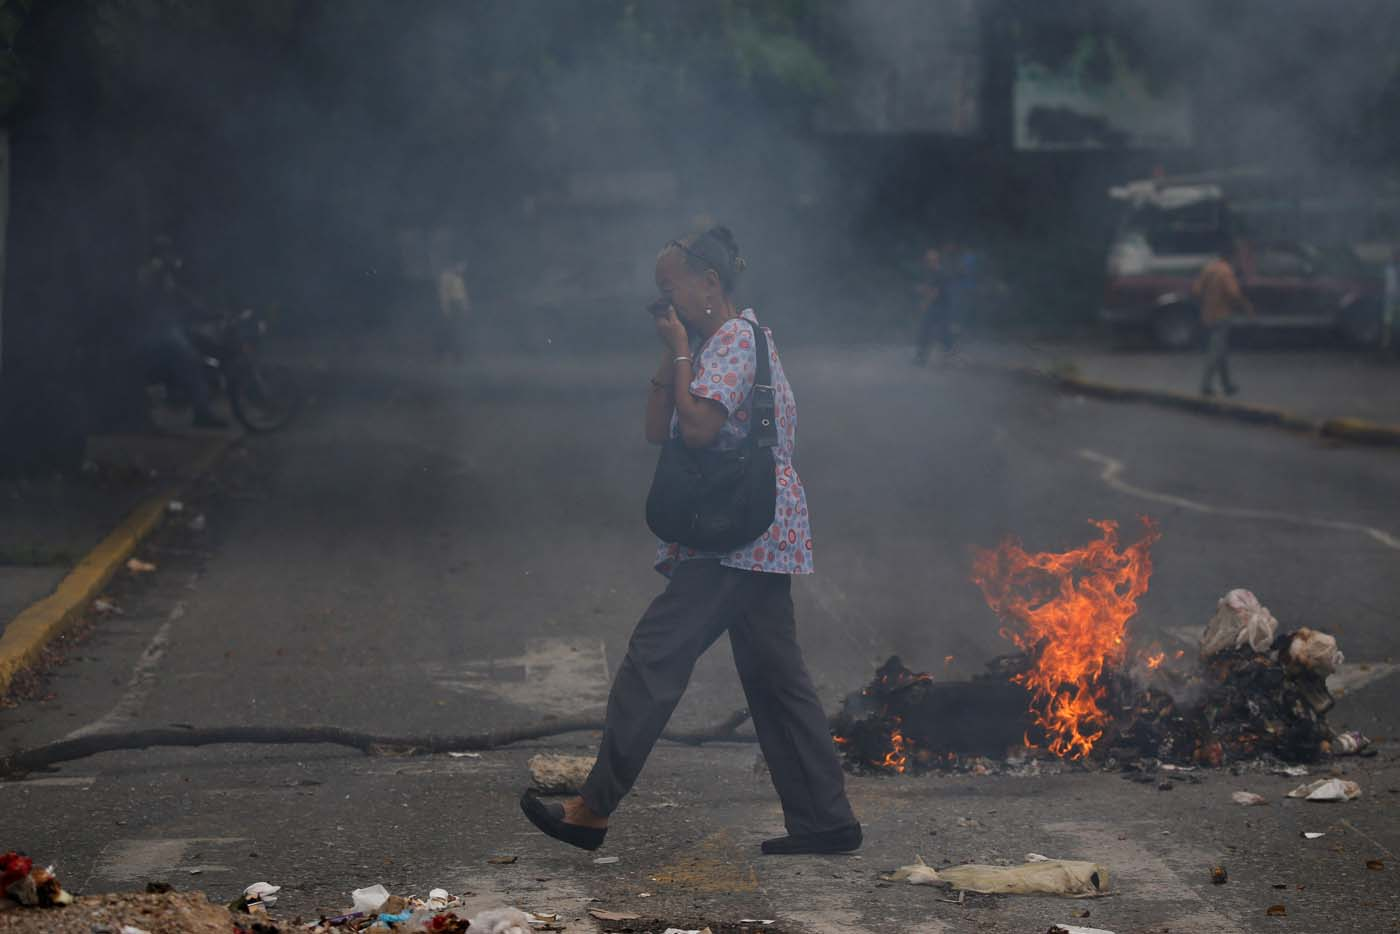 A woman covers her face as she walks past a burning barricade during a protest against Venezuela's President Nicolas Maduro's government in Caracas, Venezuela May 2, 2017. REUTERS/Carlos Garcia Rawlins